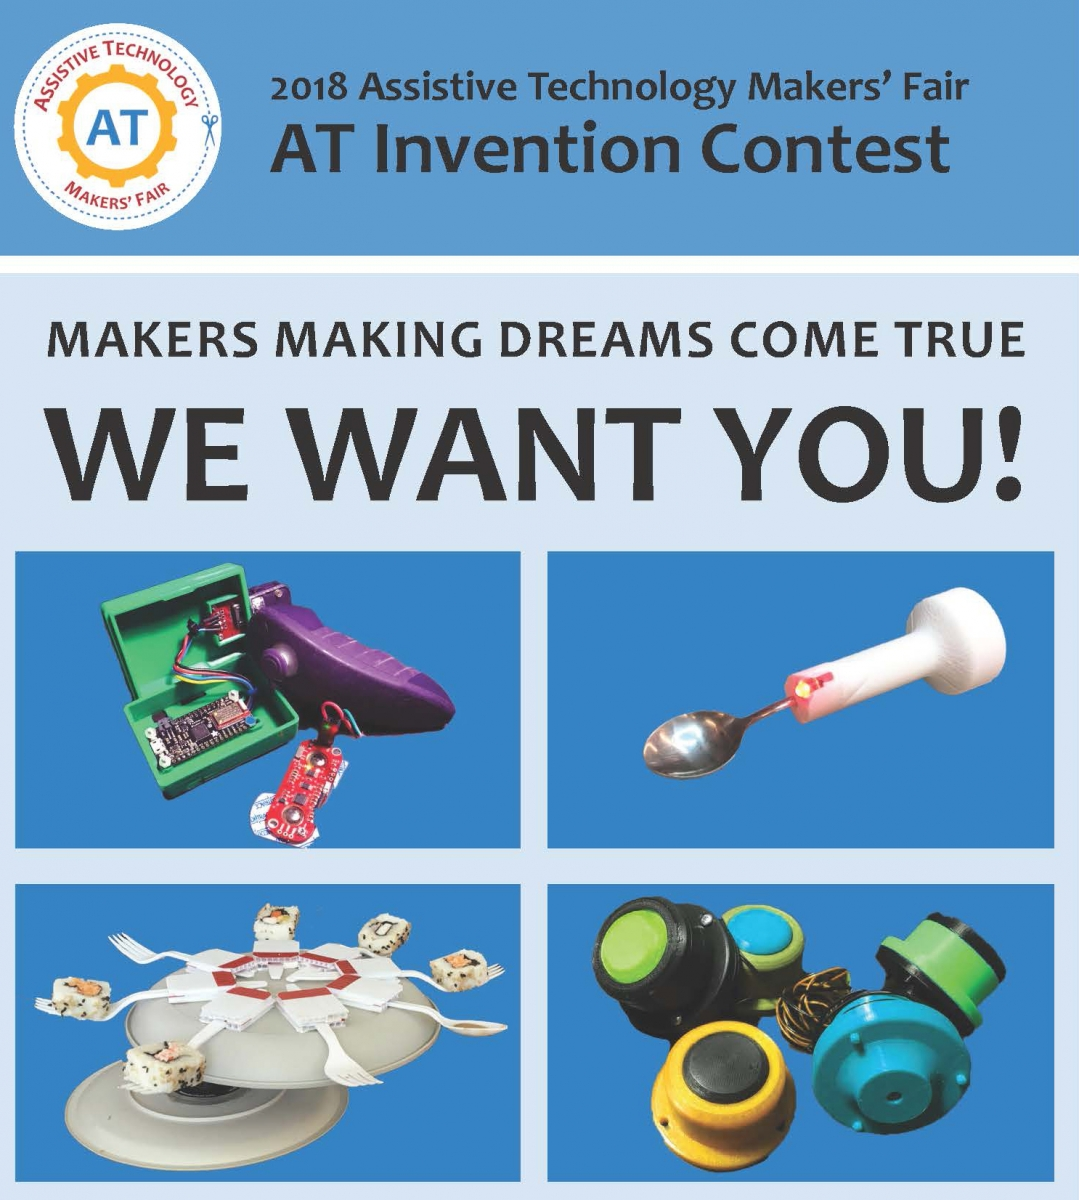 AT Invention Contest Brochure